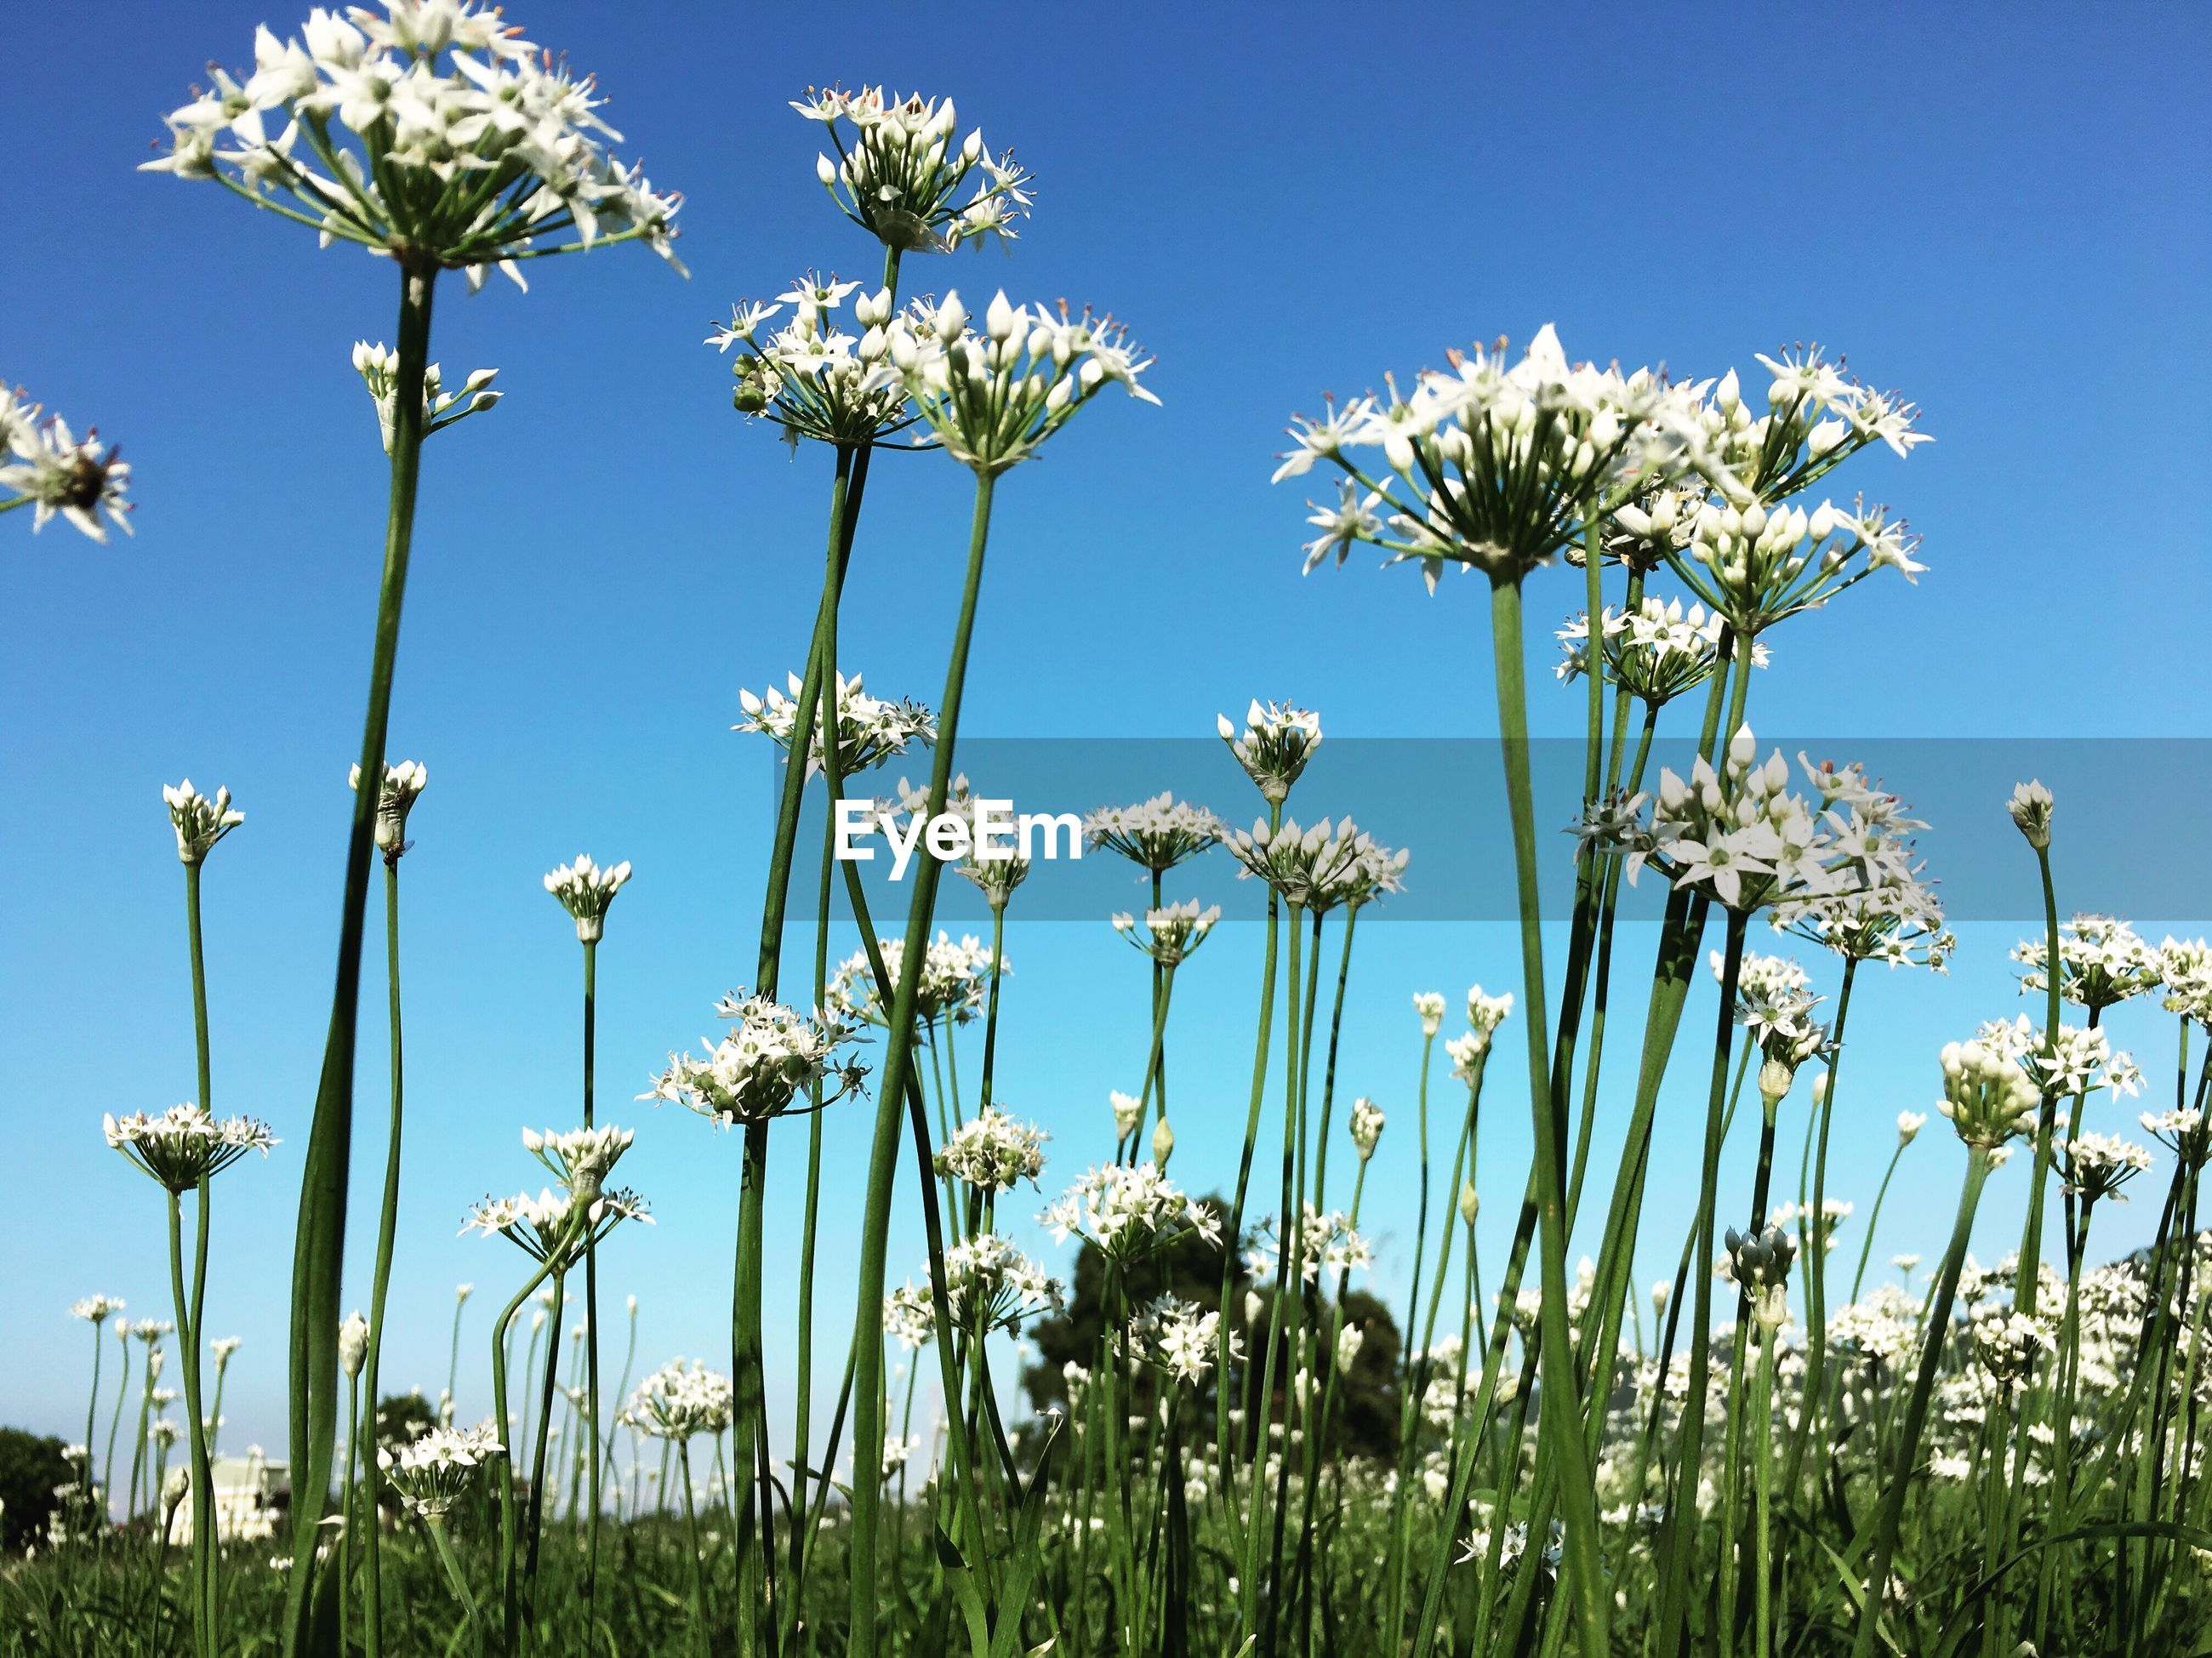 growth, stem, flower, low angle view, blue, clear sky, plant, fragility, beauty in nature, freshness, nature, springtime, scenics, uncultivated, in bloom, day, botany, field, tranquil scene, tranquility, tall - high, sky, outdoors, dandelion, wildflower, non-urban scene, summer, softness, daisies, blossom, flowering